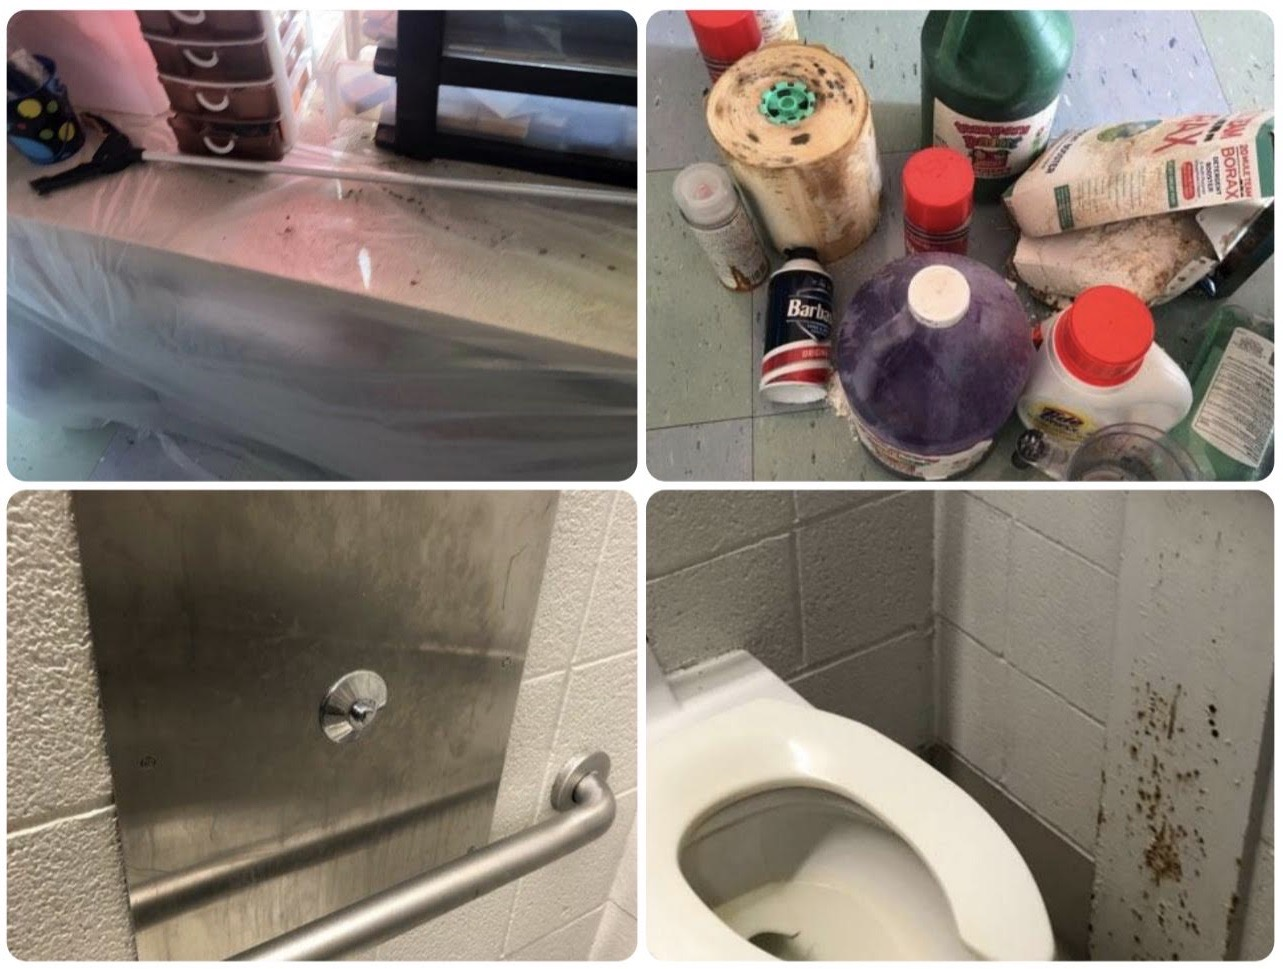 Unsanitary conditions have been reported by some Philadelphia teachers when they reported by to school March 2021.